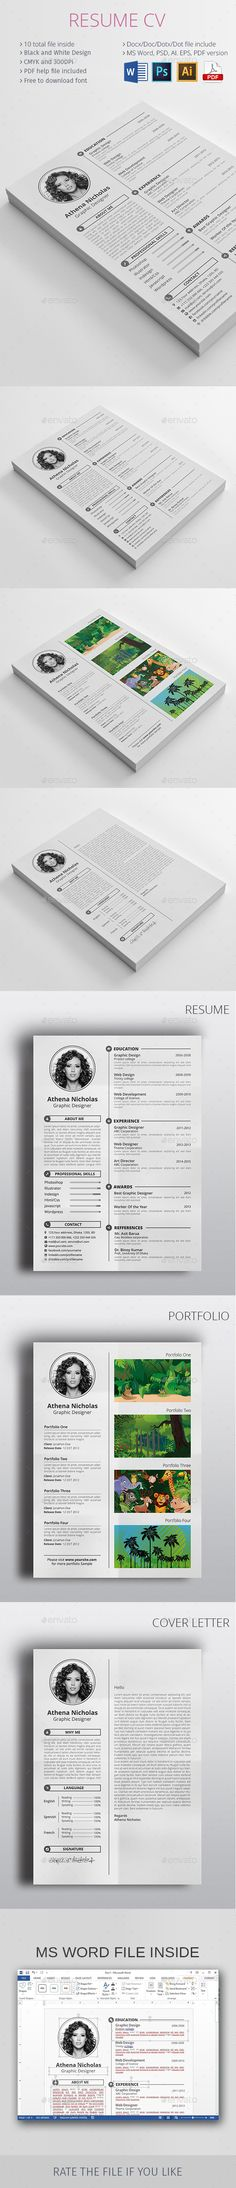 Elegant Resume Template (Word, PSD) u2026 Pinteresu2026 - 100 Resume Words